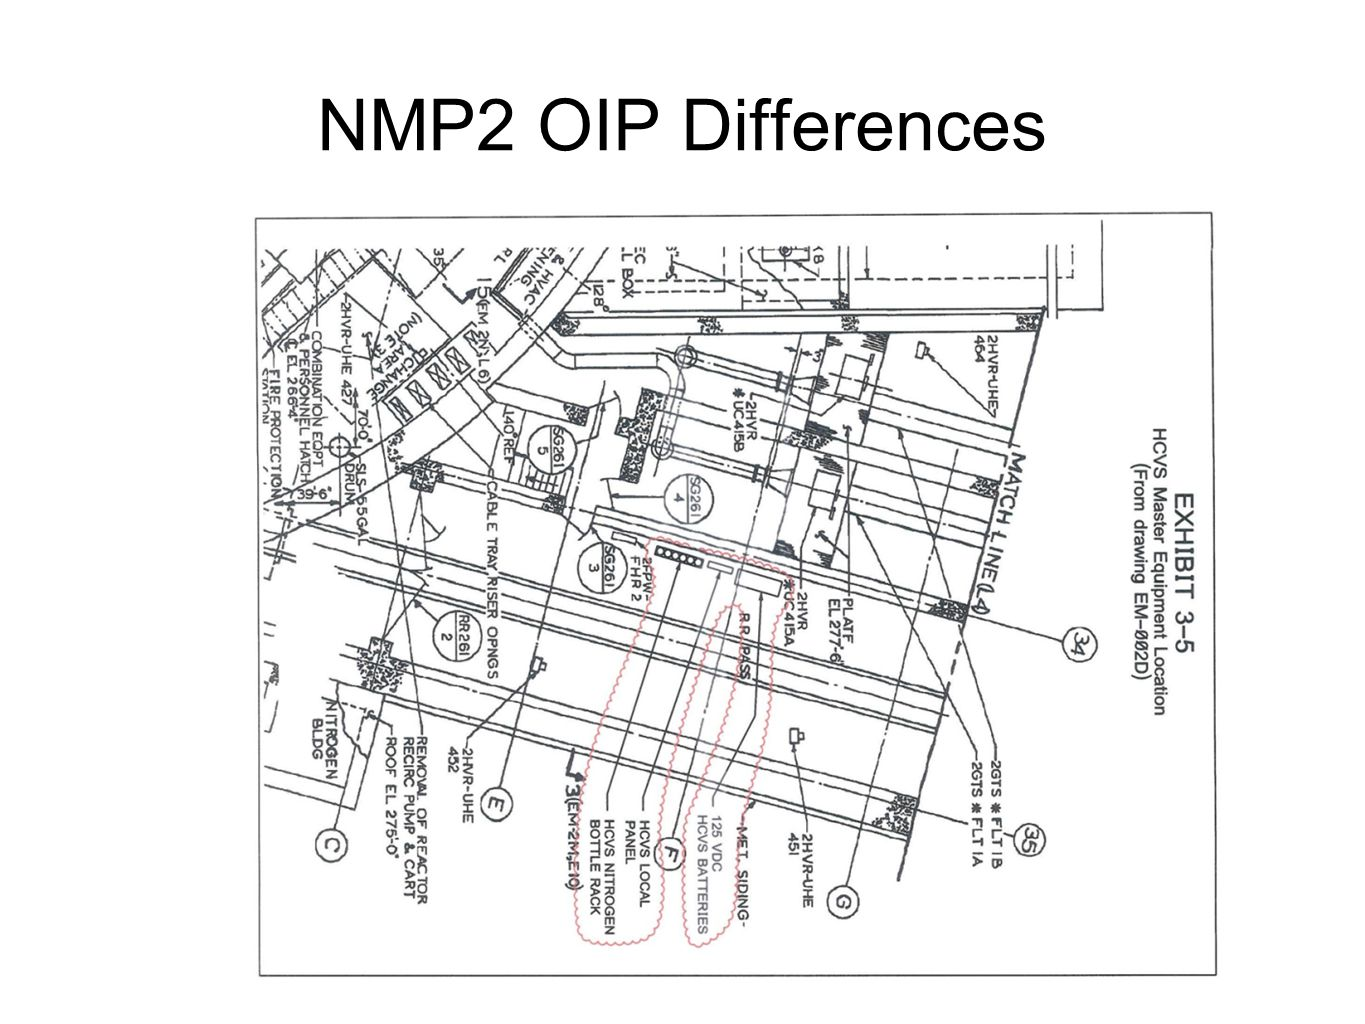 NMP2 OIP Differences